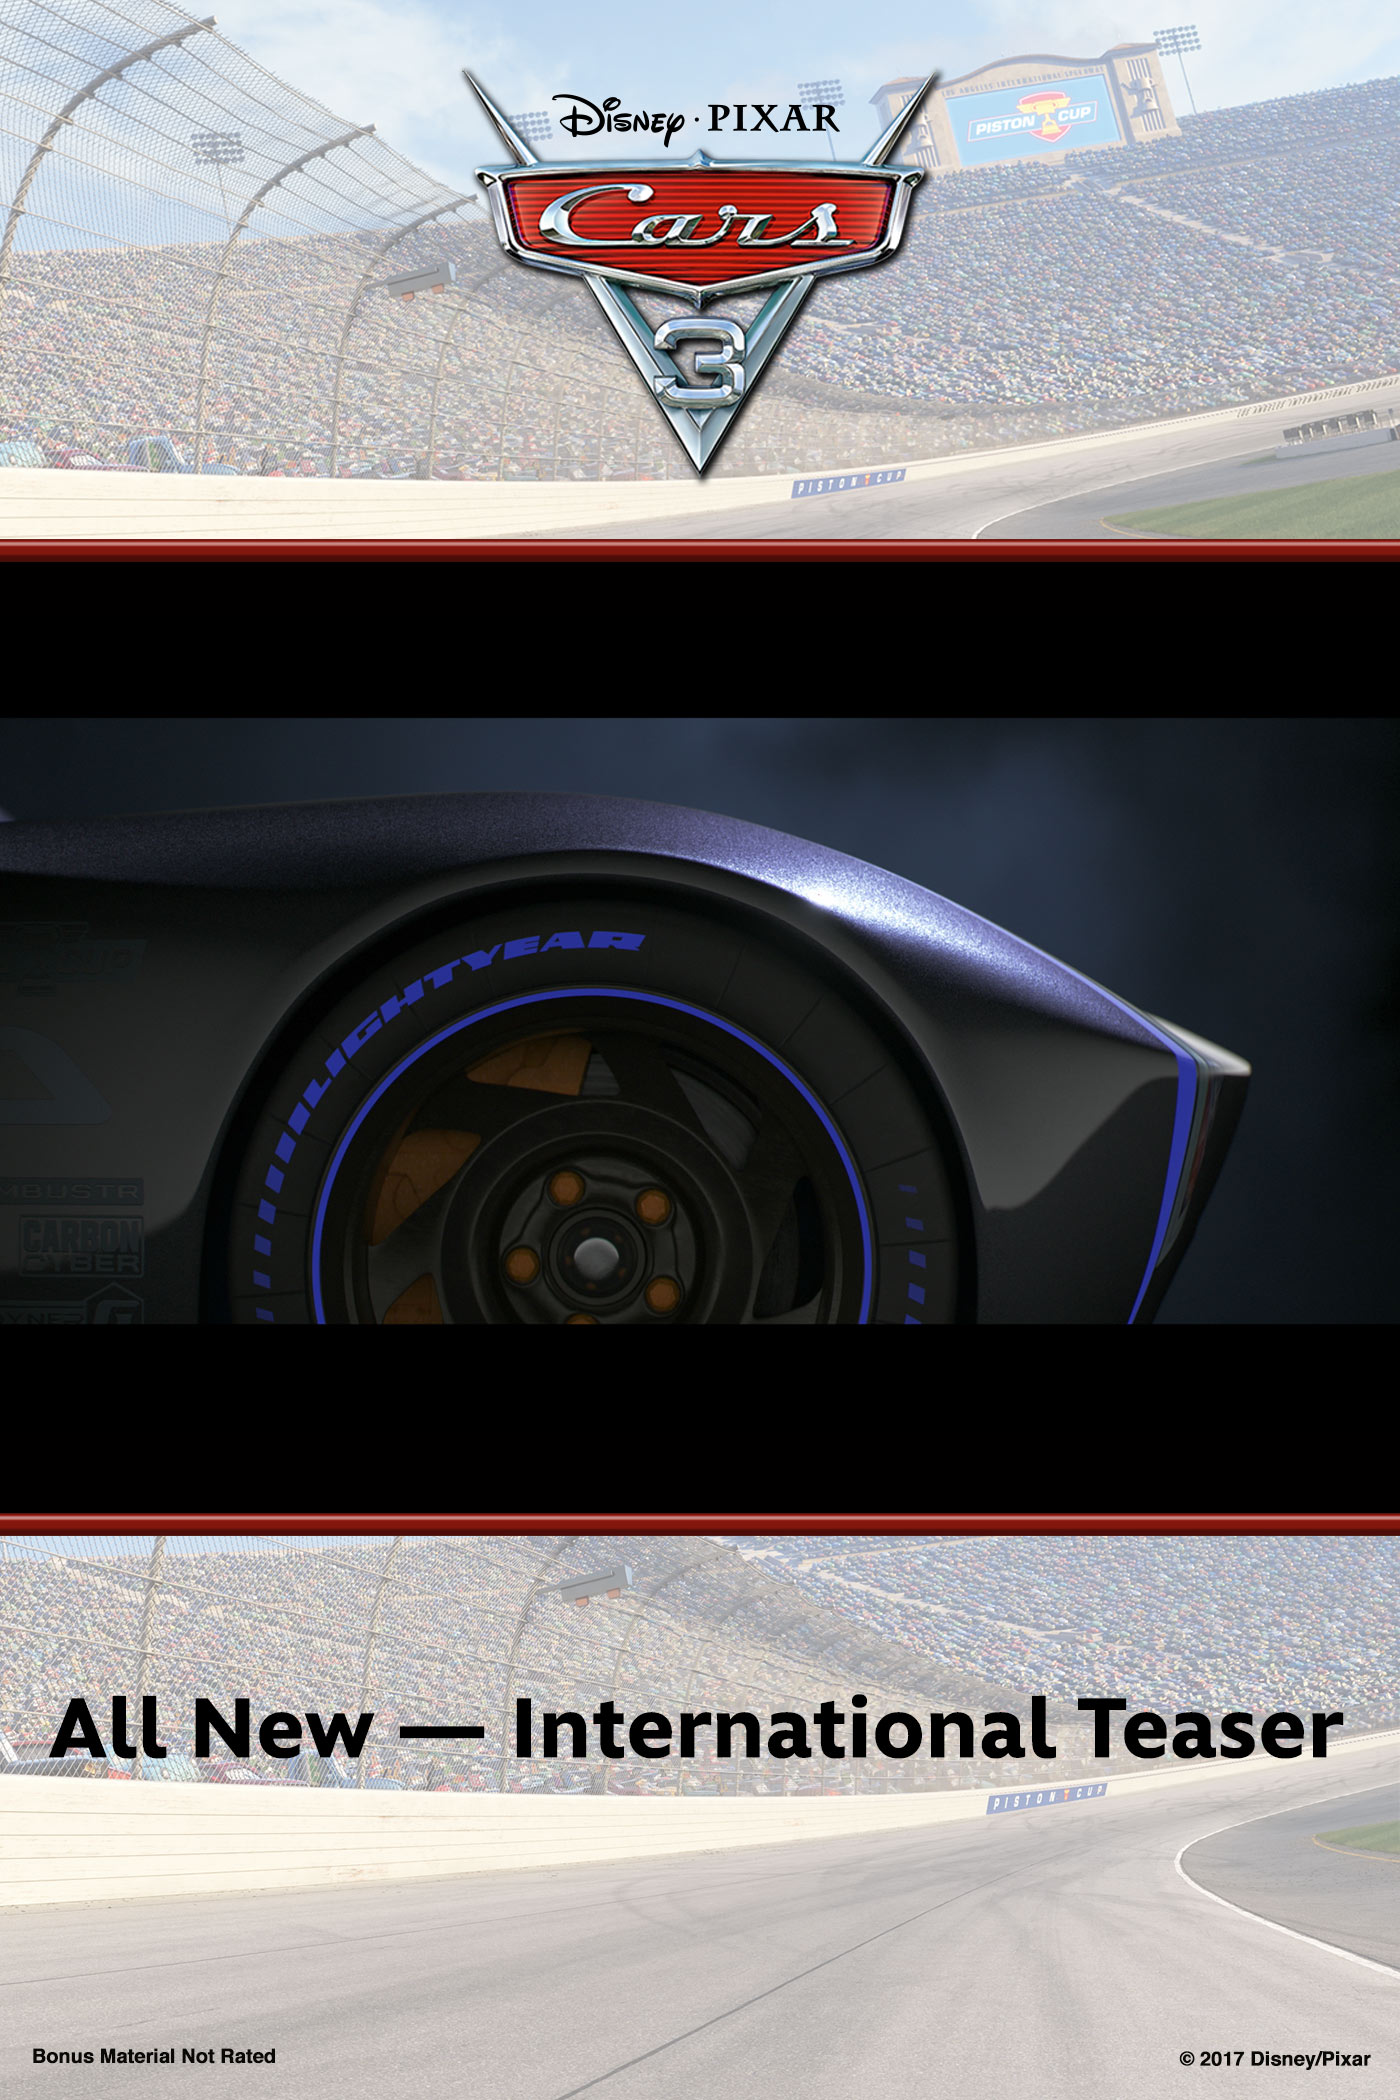 International Teaser